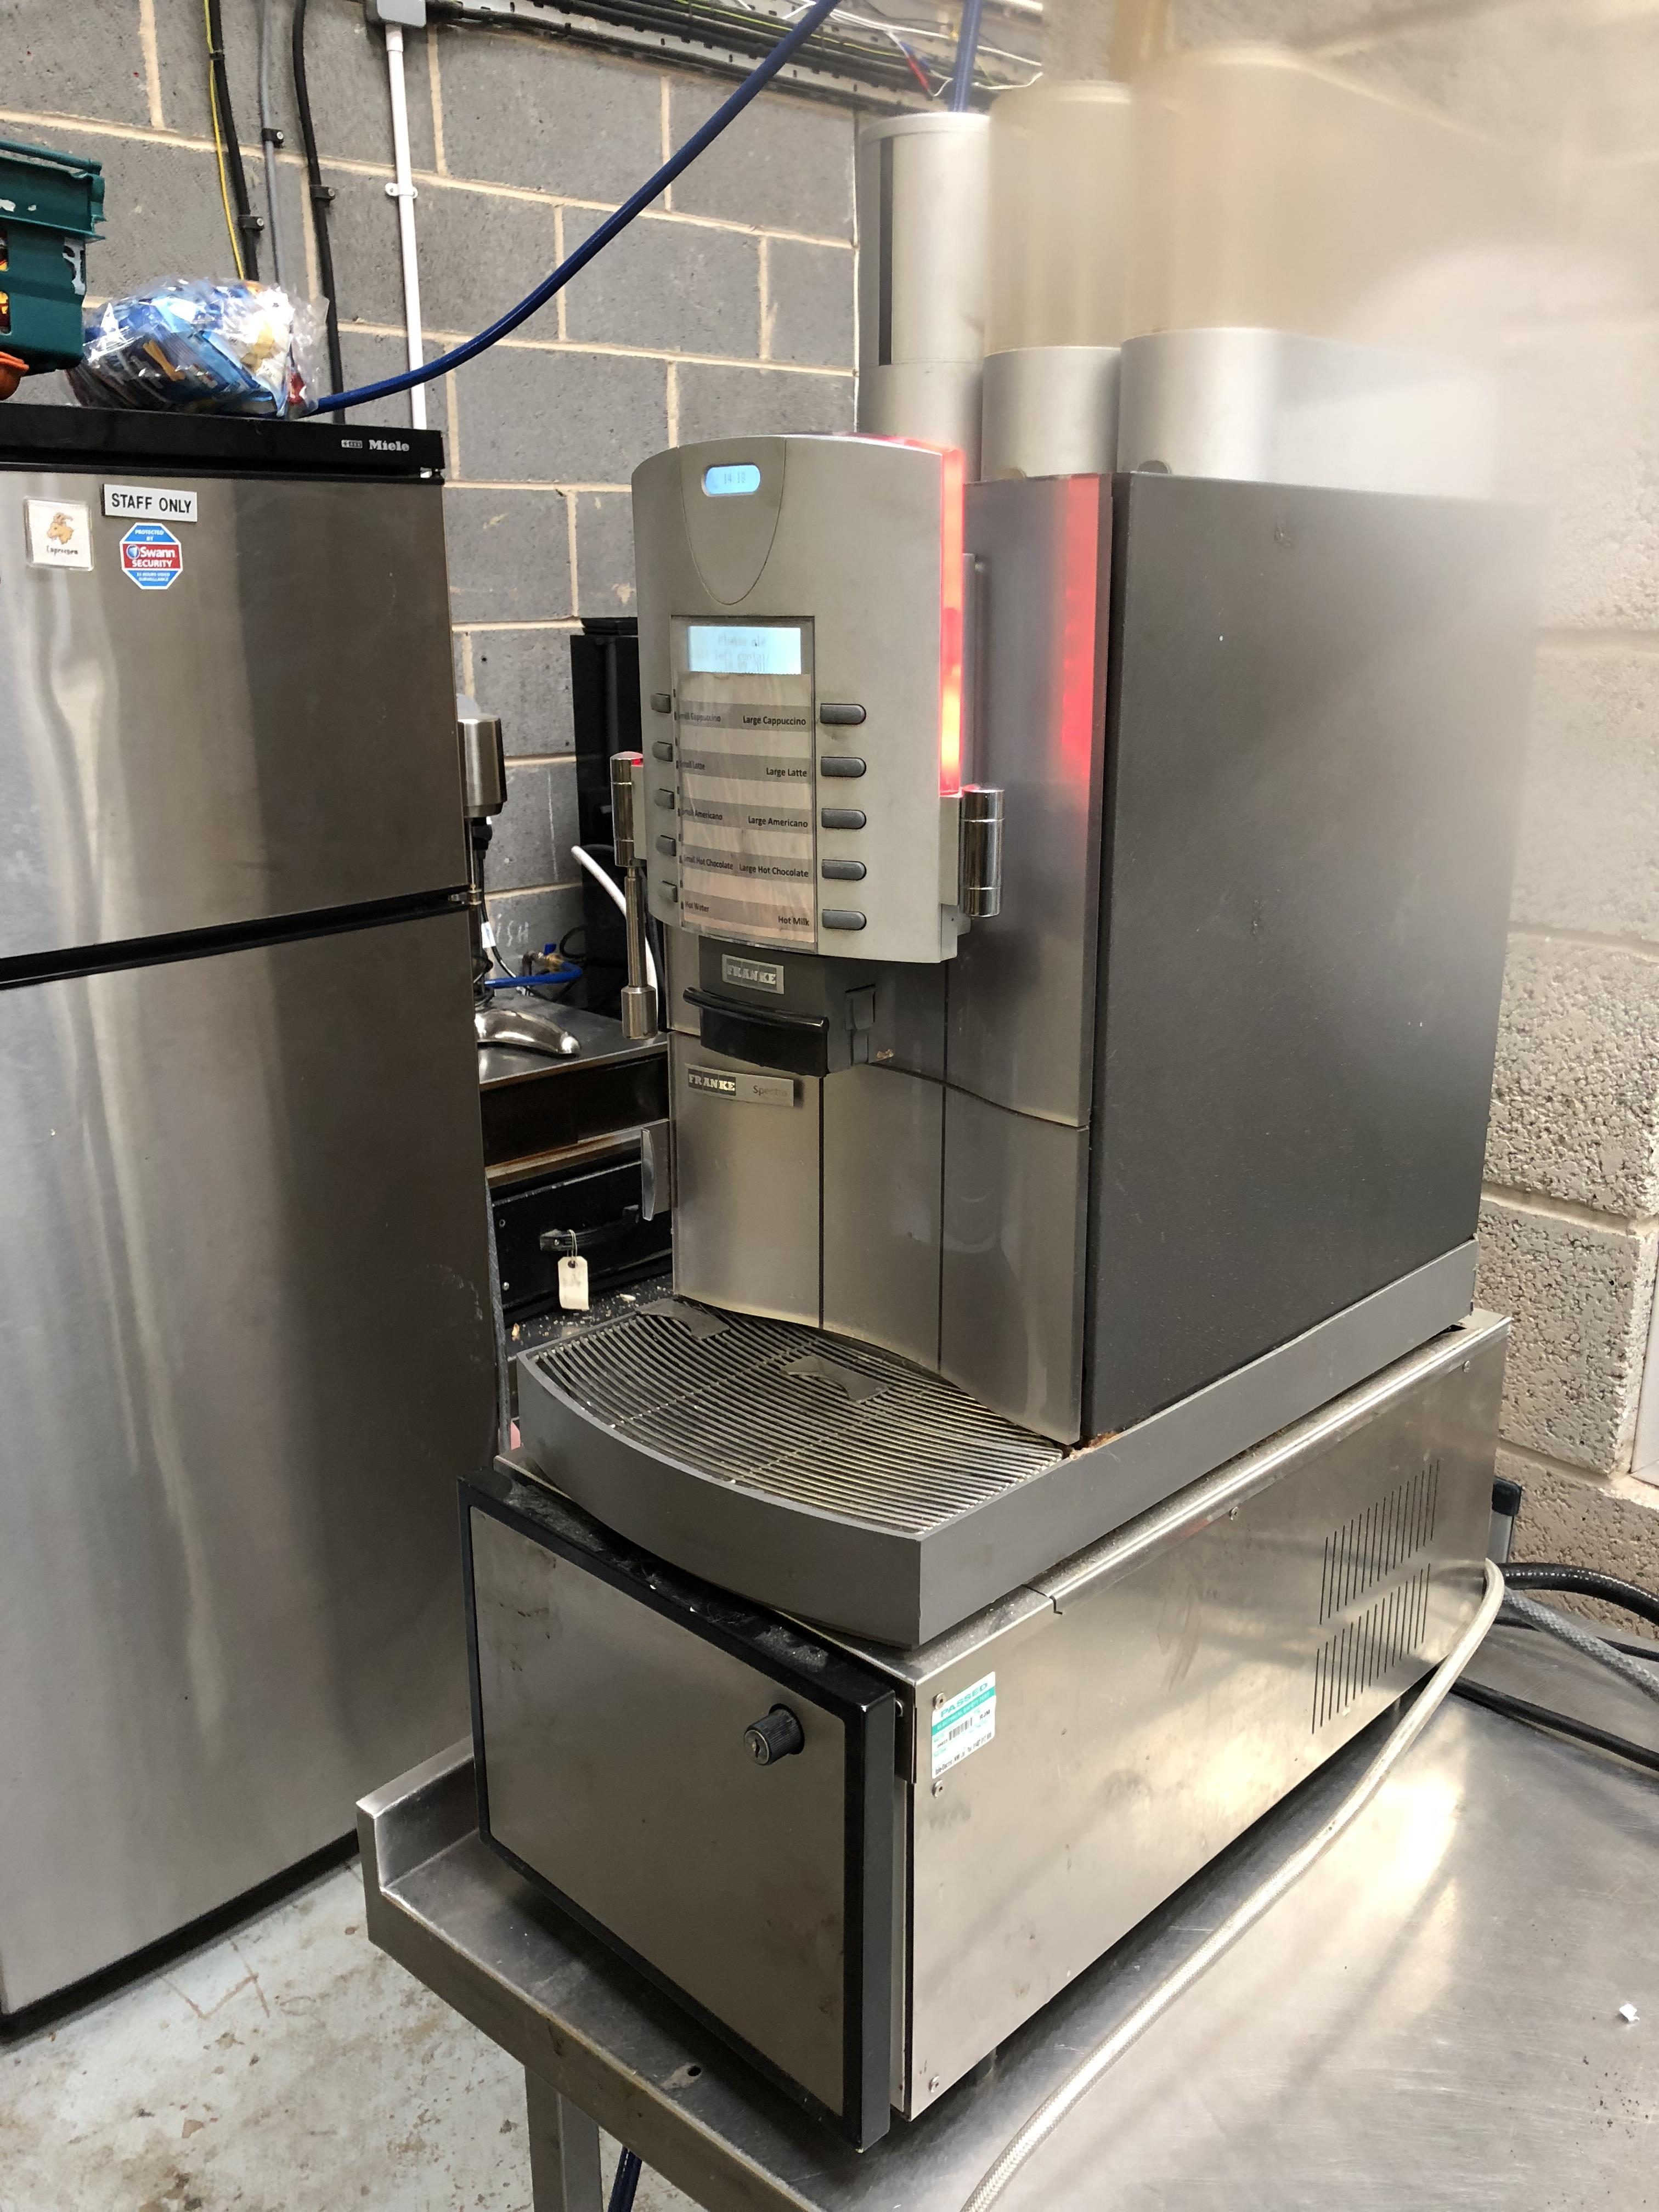 Lot 221 - Franke Spectra Bean To Cup Coffee Machine and Milk Cooler